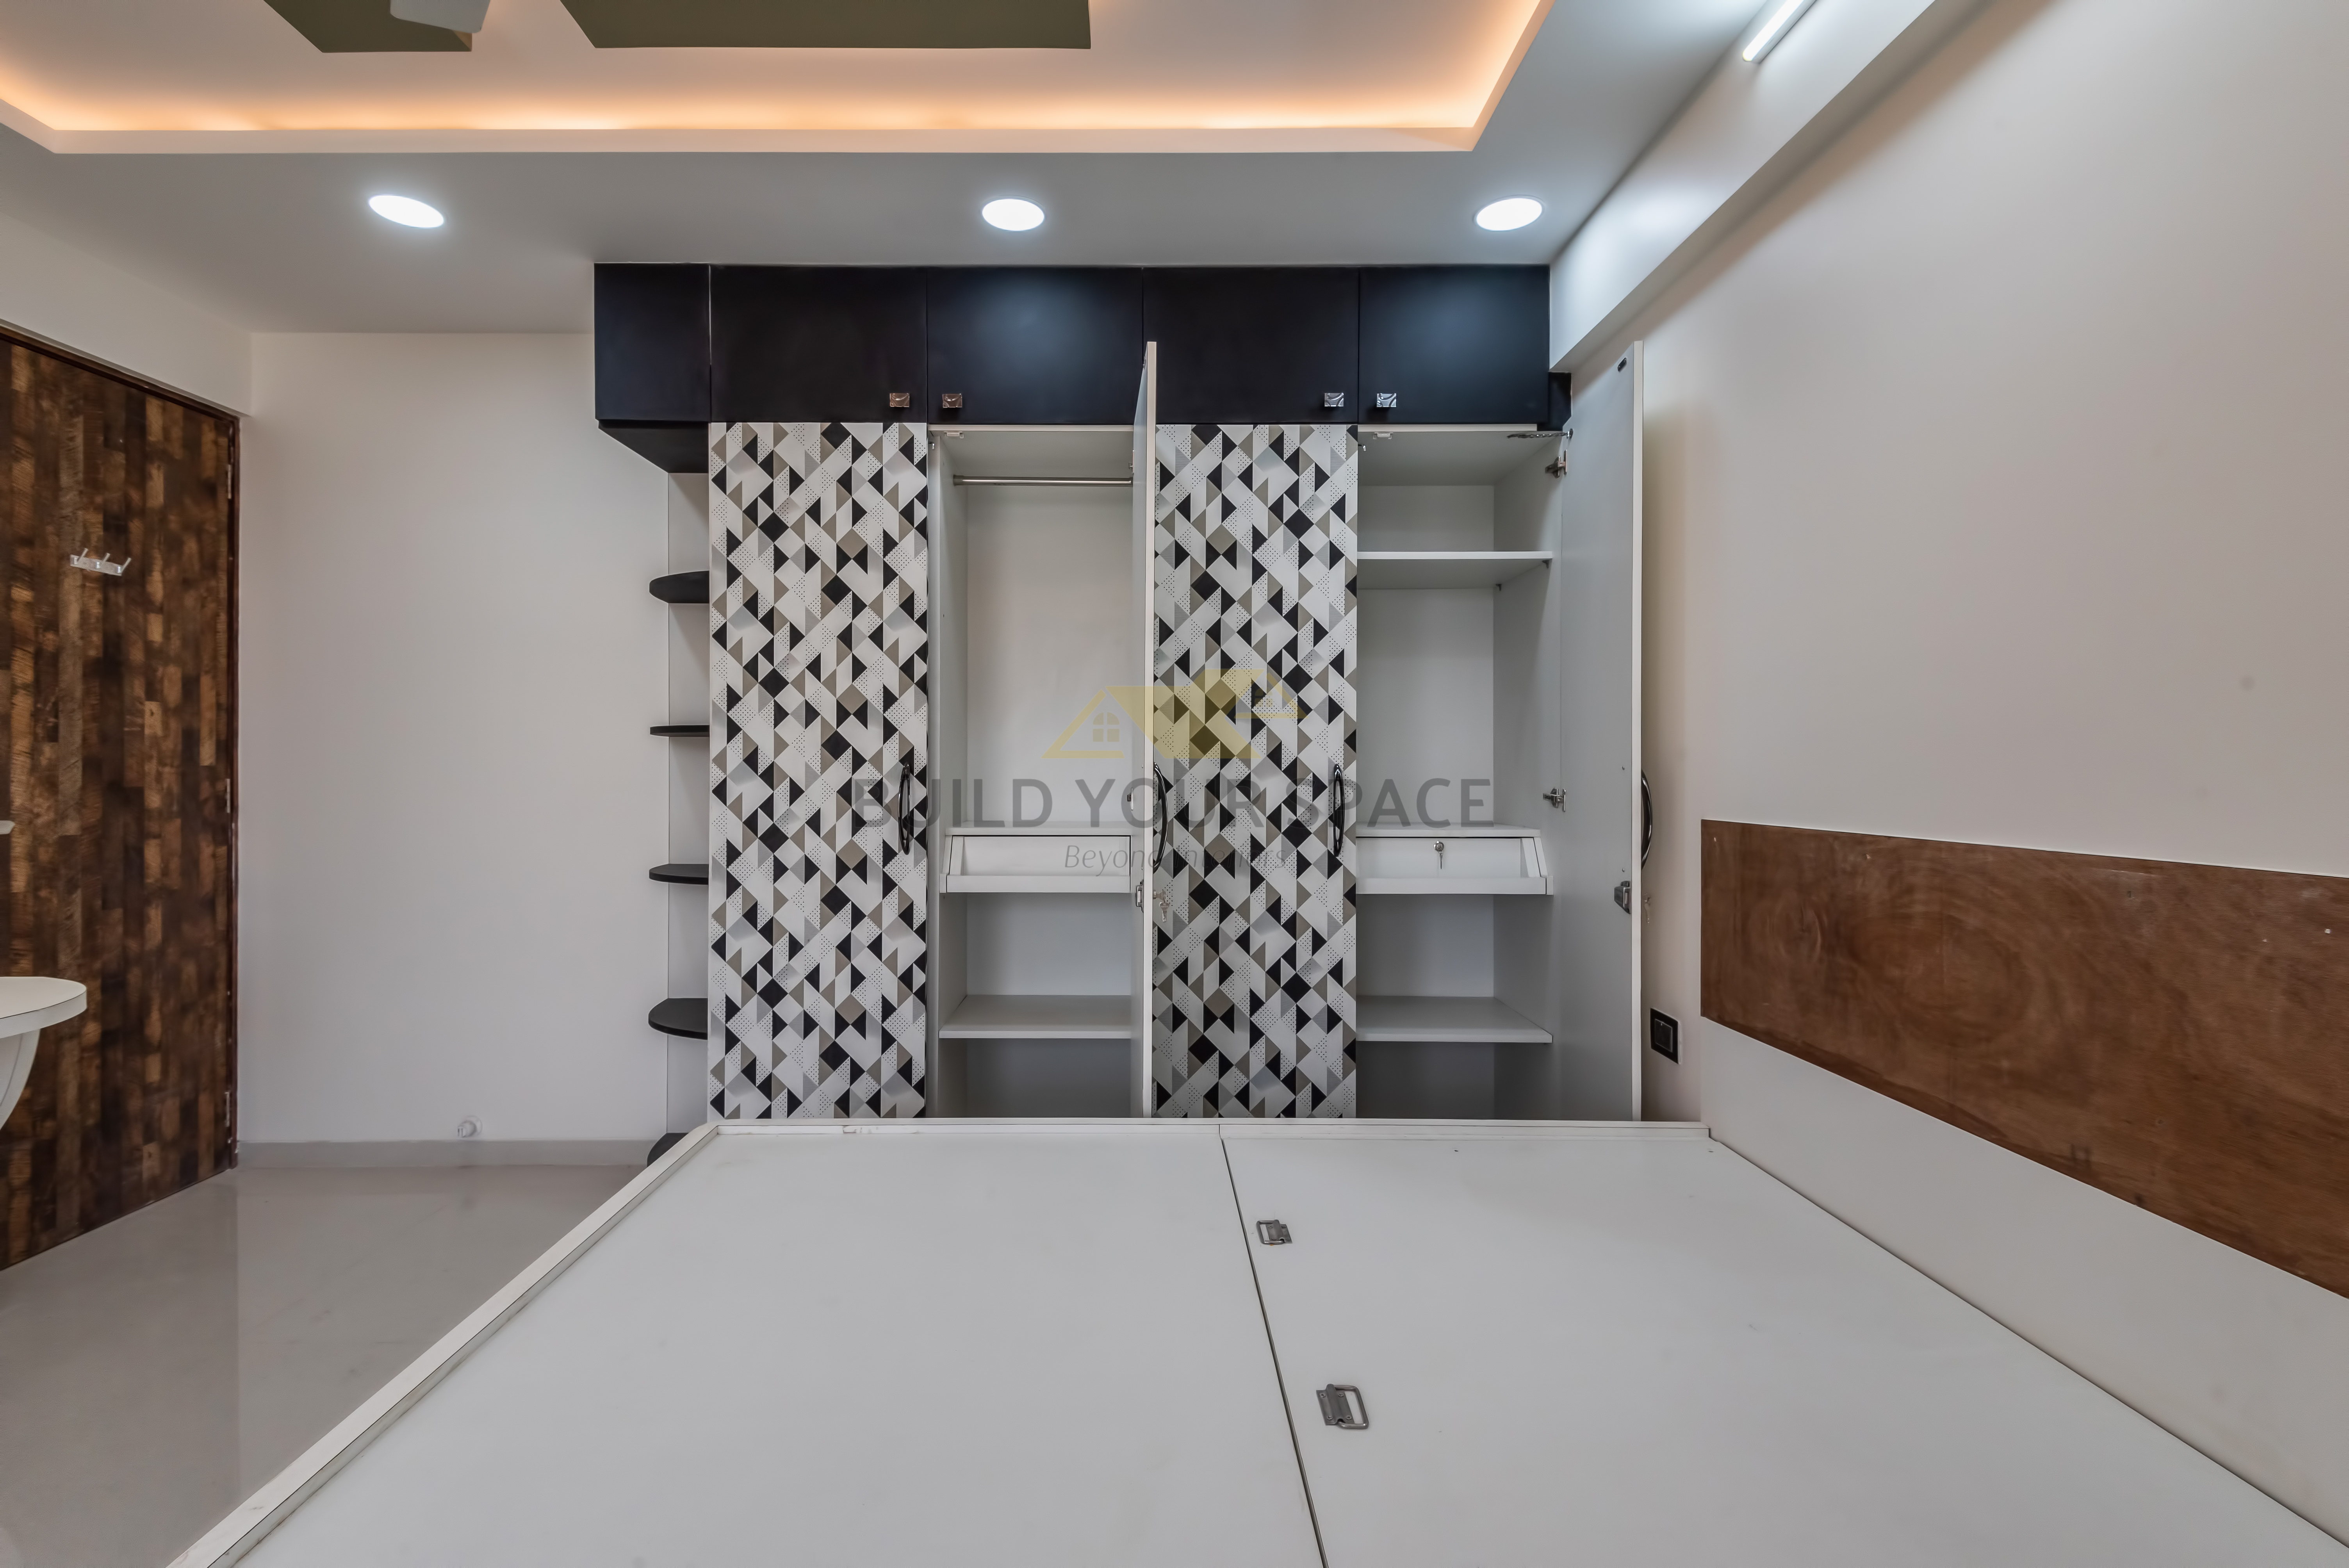 Ghar Pe Service, Wooden Furniture in Wagholi,  At Home Furniture in Undri, Study Table in Undri, Wooden Cupboard in Wagholi, Bedroom Cupboards in Wagholi, best, top, top 5, good, famous.